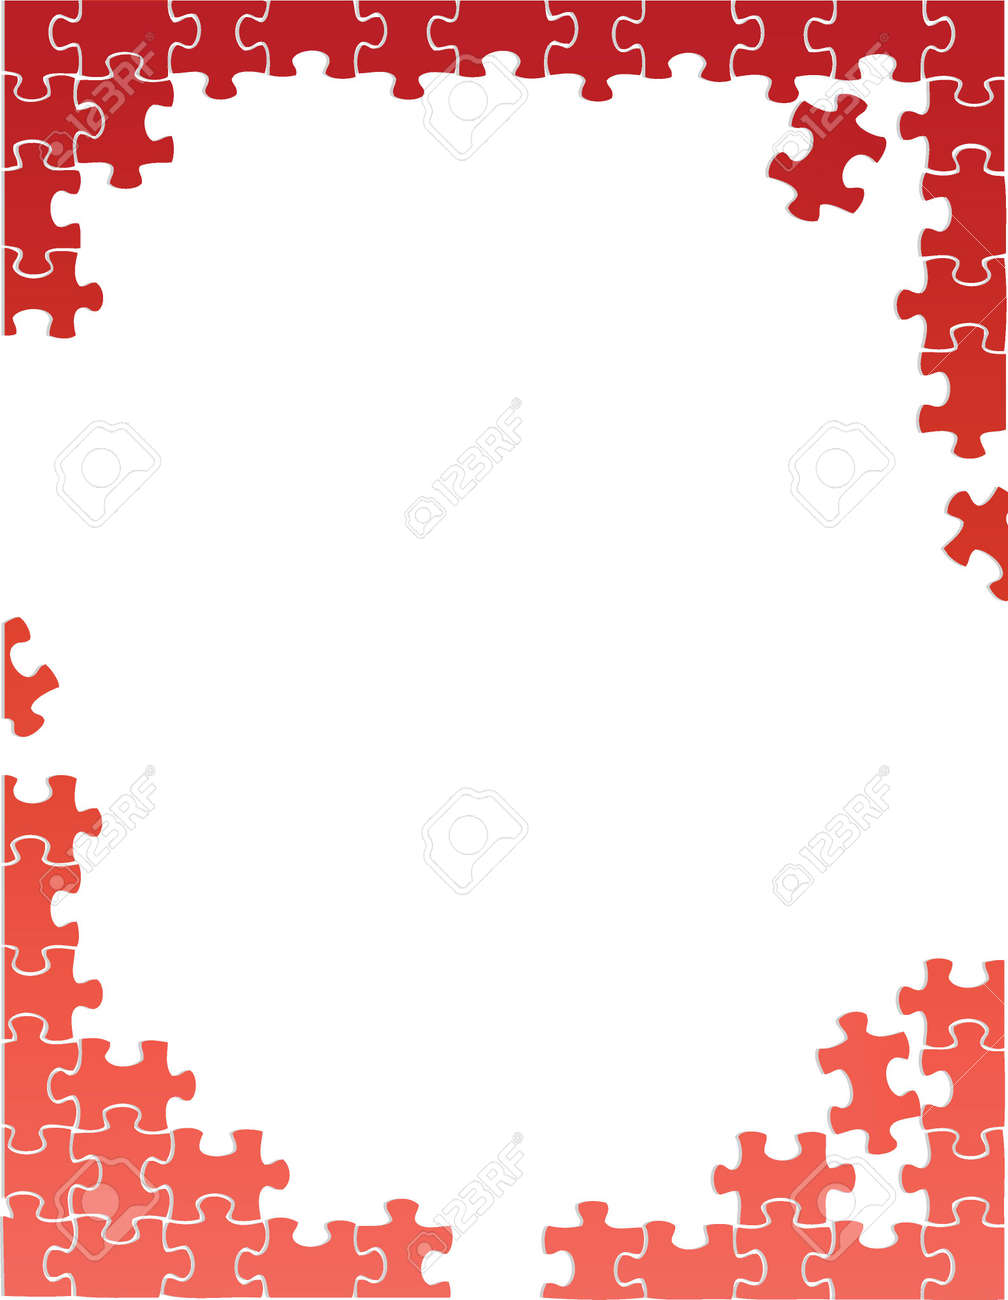 Red Puzzle Pieces Border Template Illustration Design Over A ...